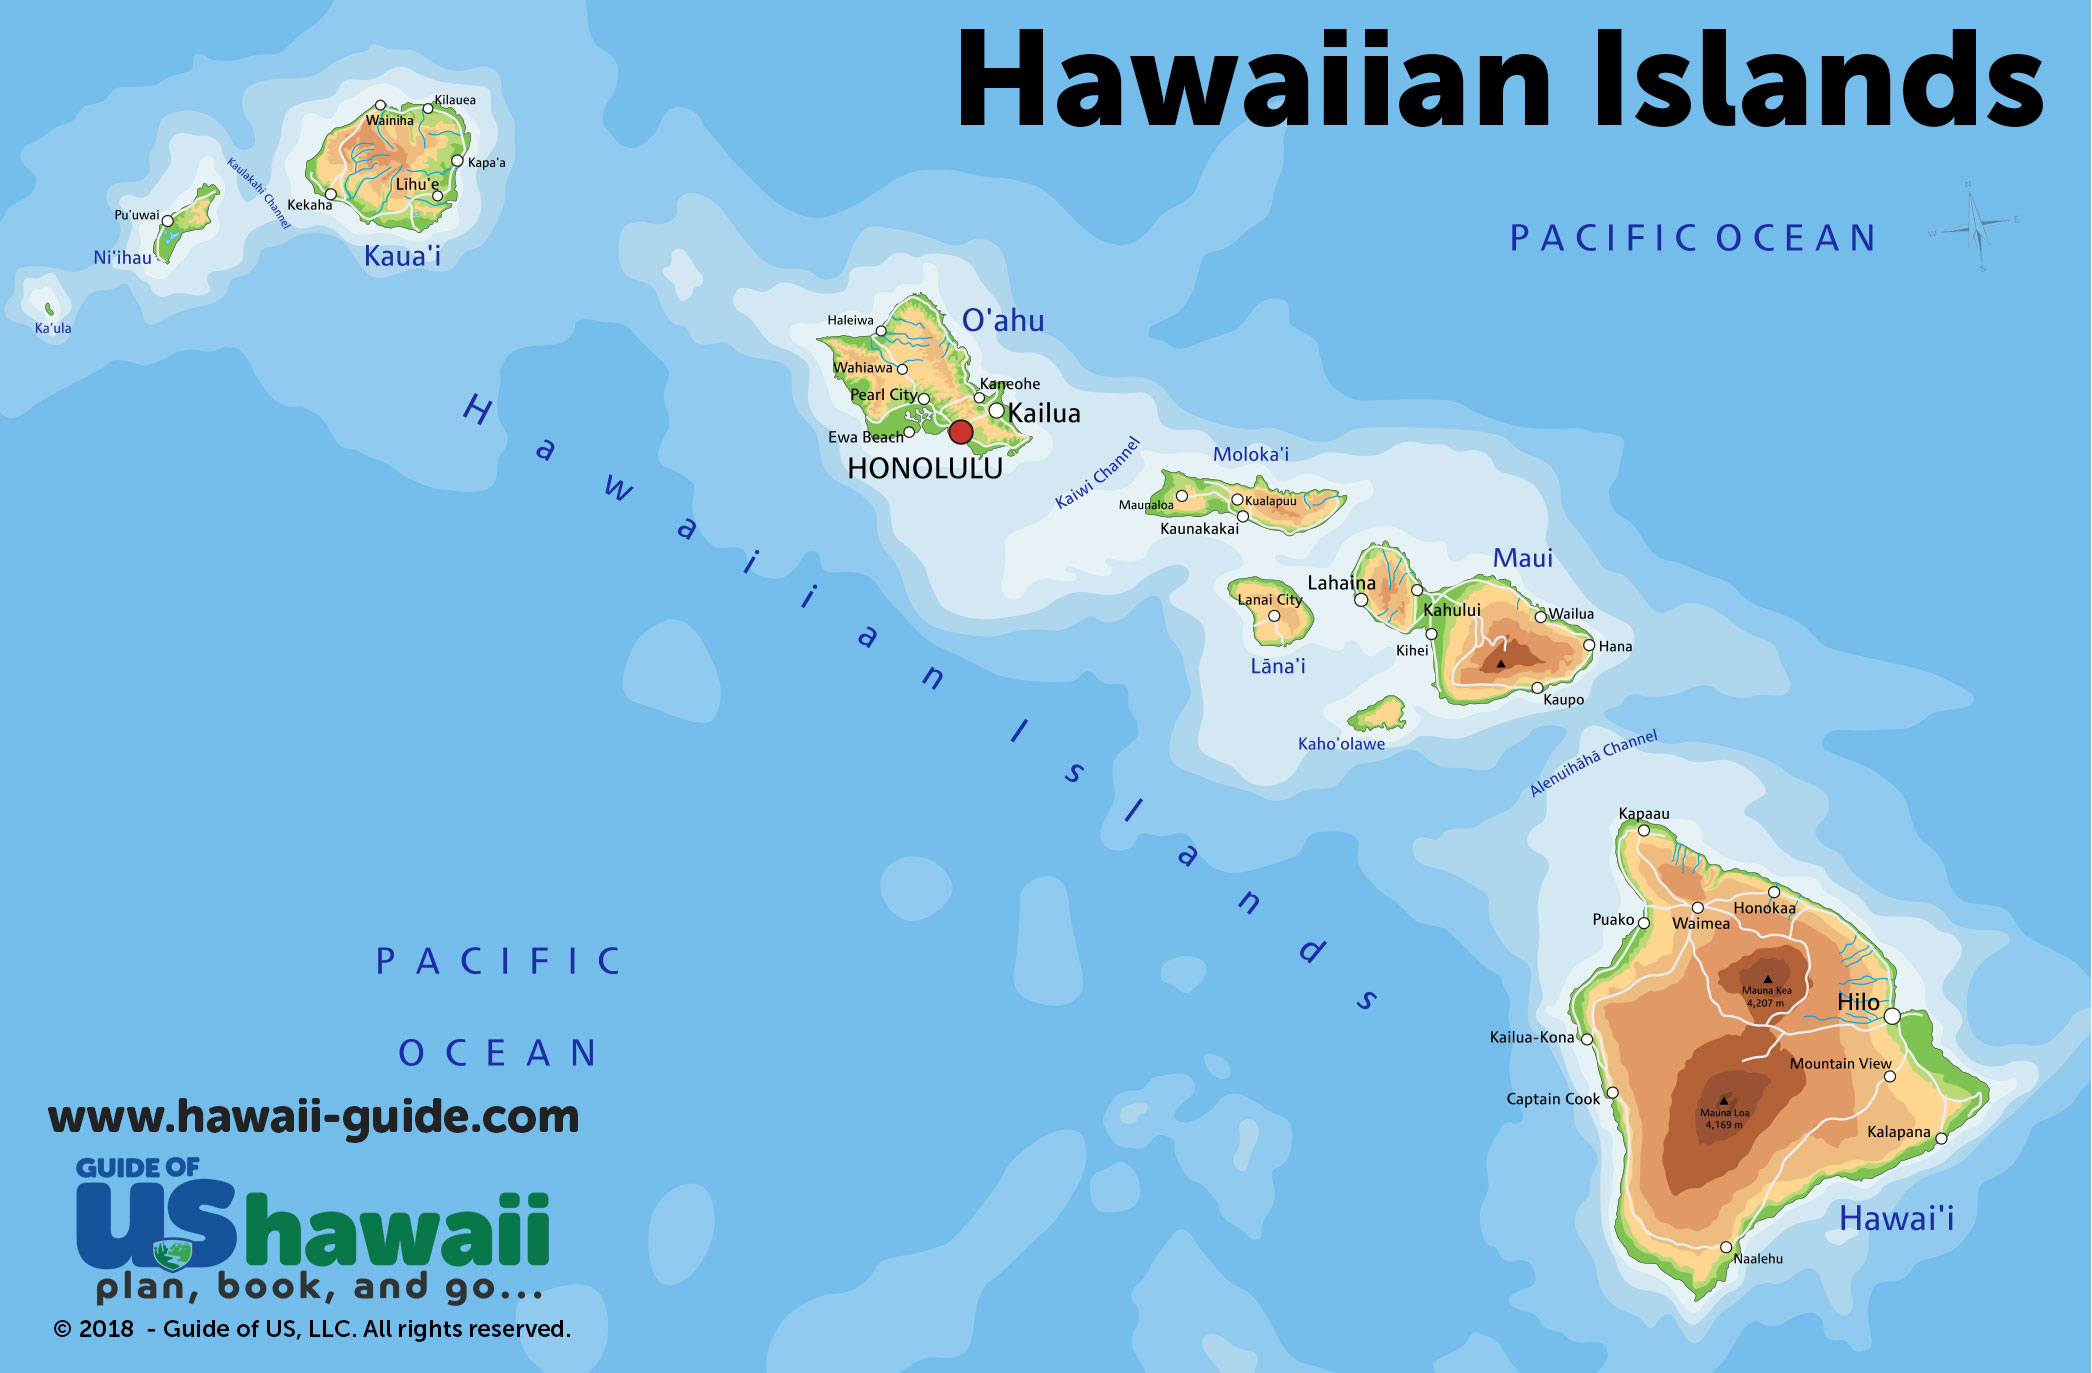 Maps Of Hawaii Maps of Hawaii: Hawaiian Islands Map